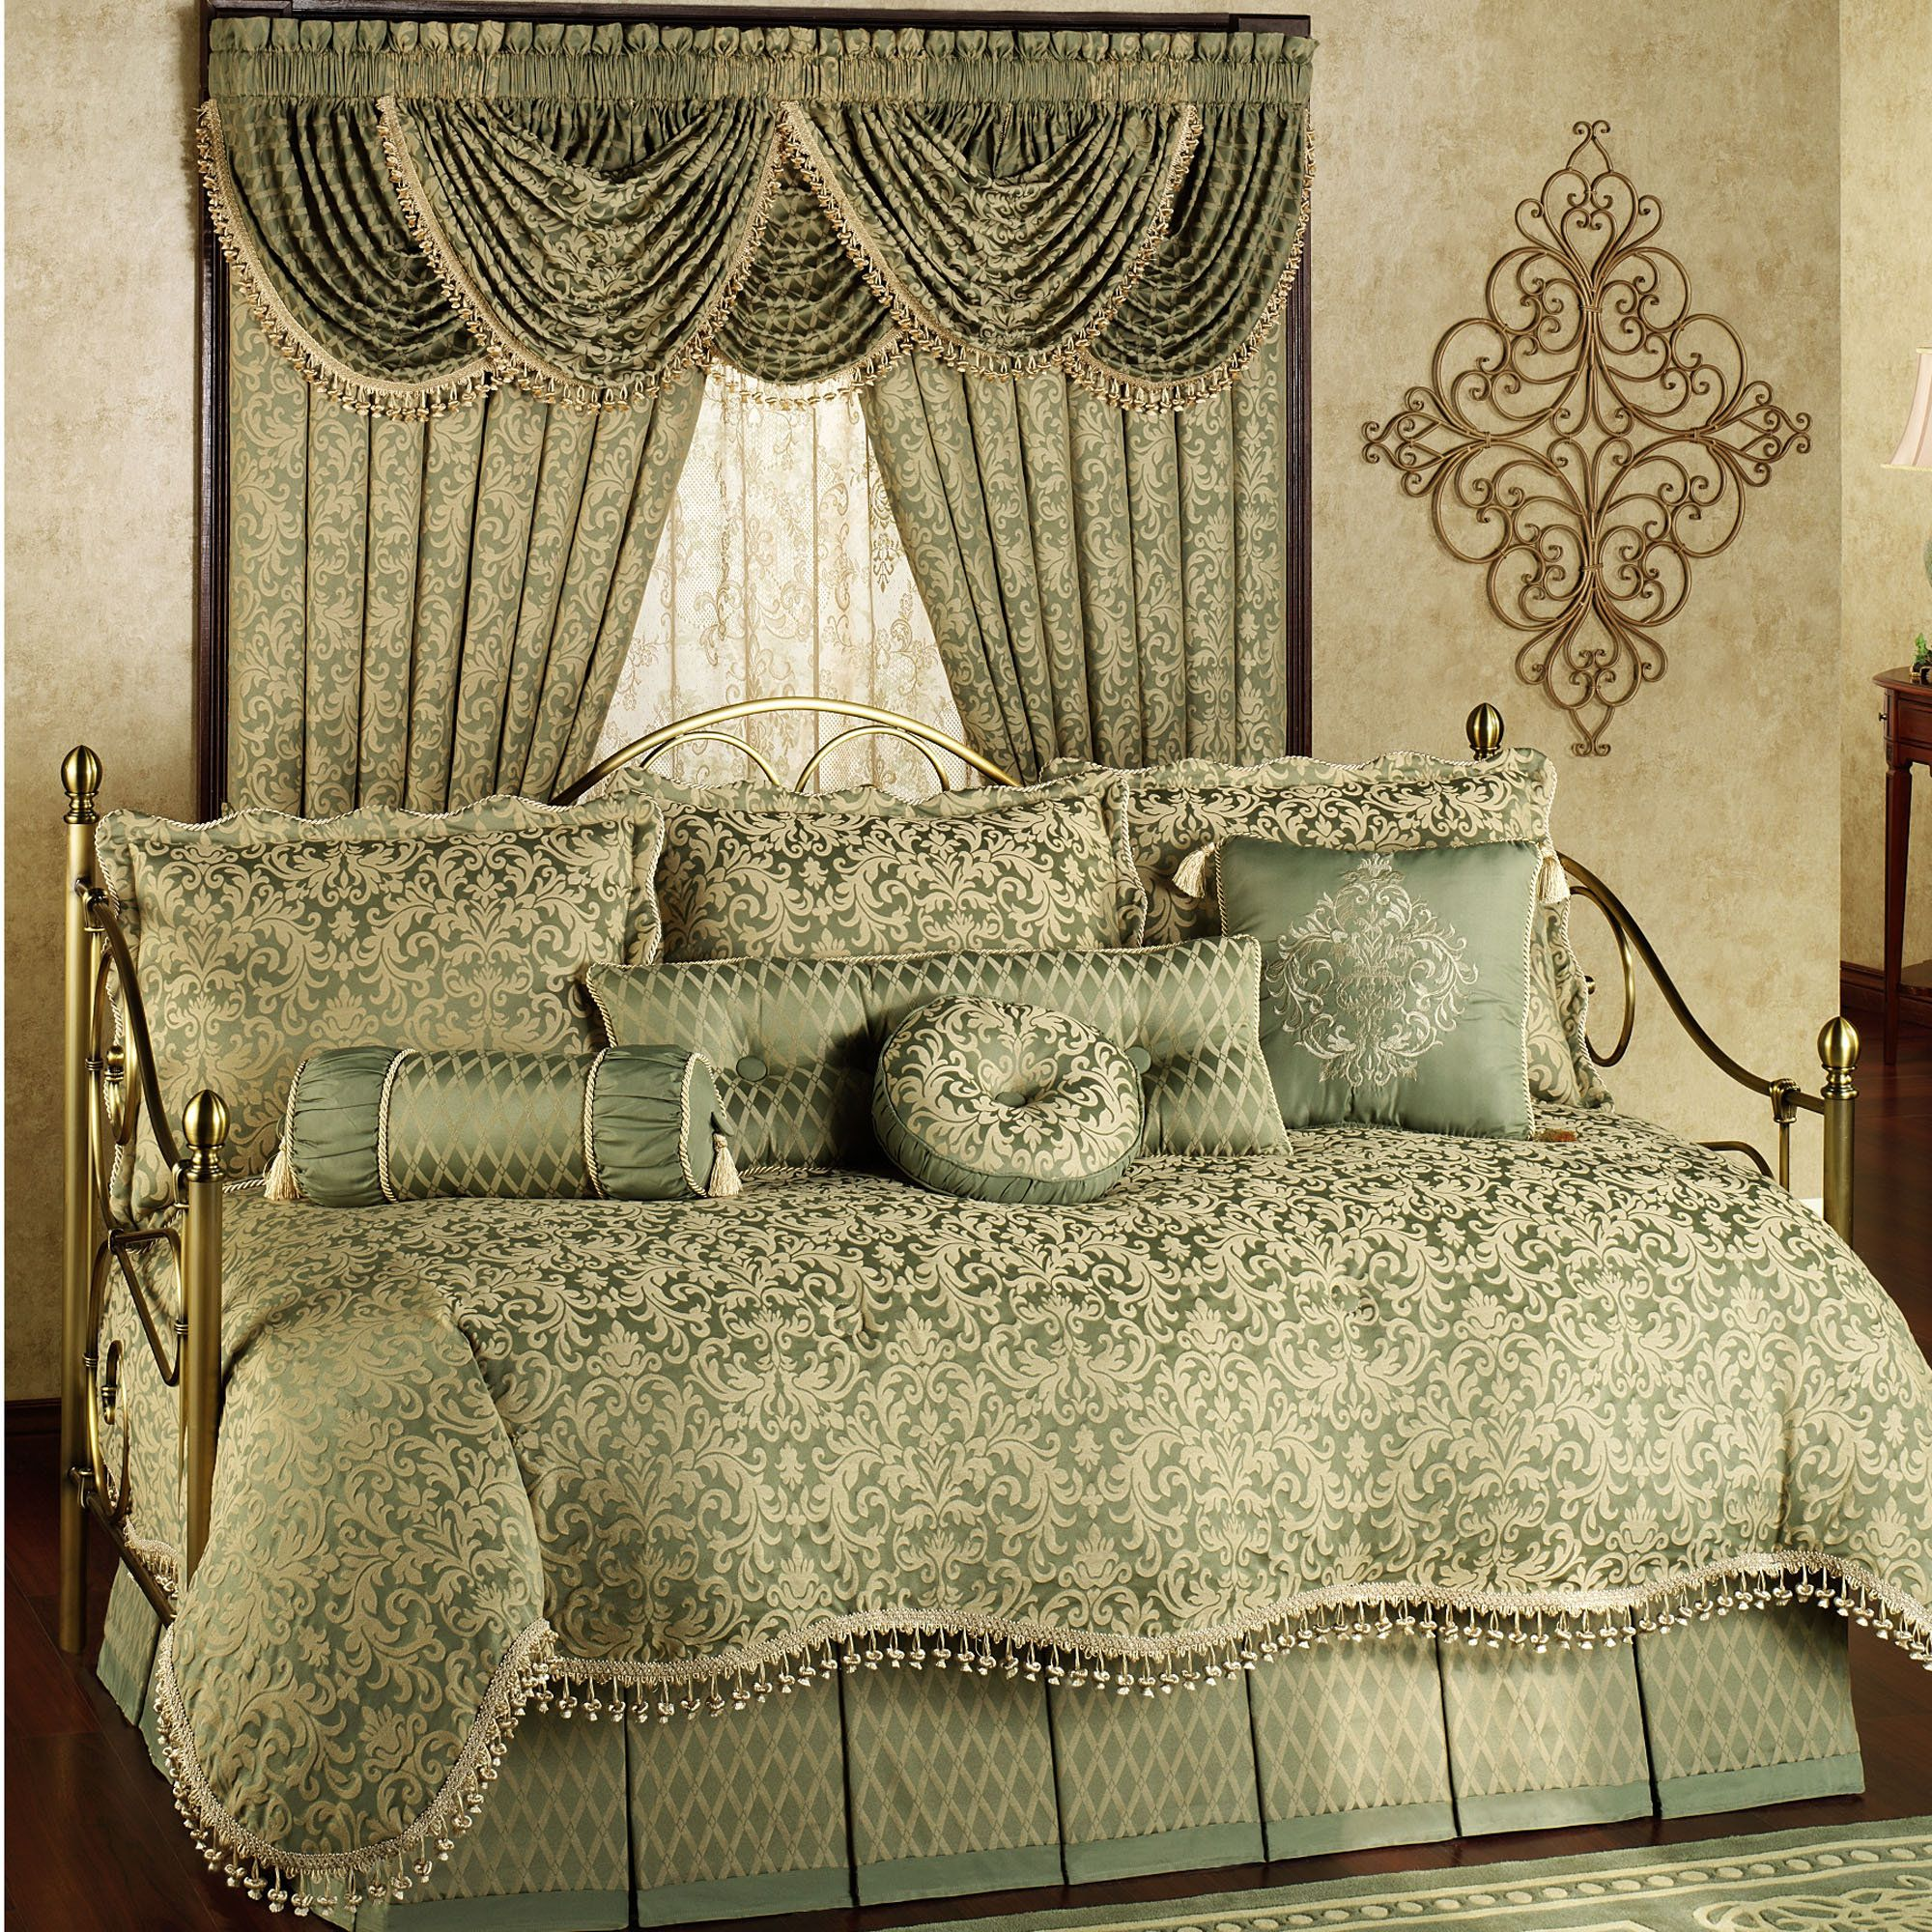 Attractive Daybed Comforter Sets For Modern Bedroom Design: Girls Bedding  Sets With Daybed Comforter Sets And Wooden Floor For Bedroom Design